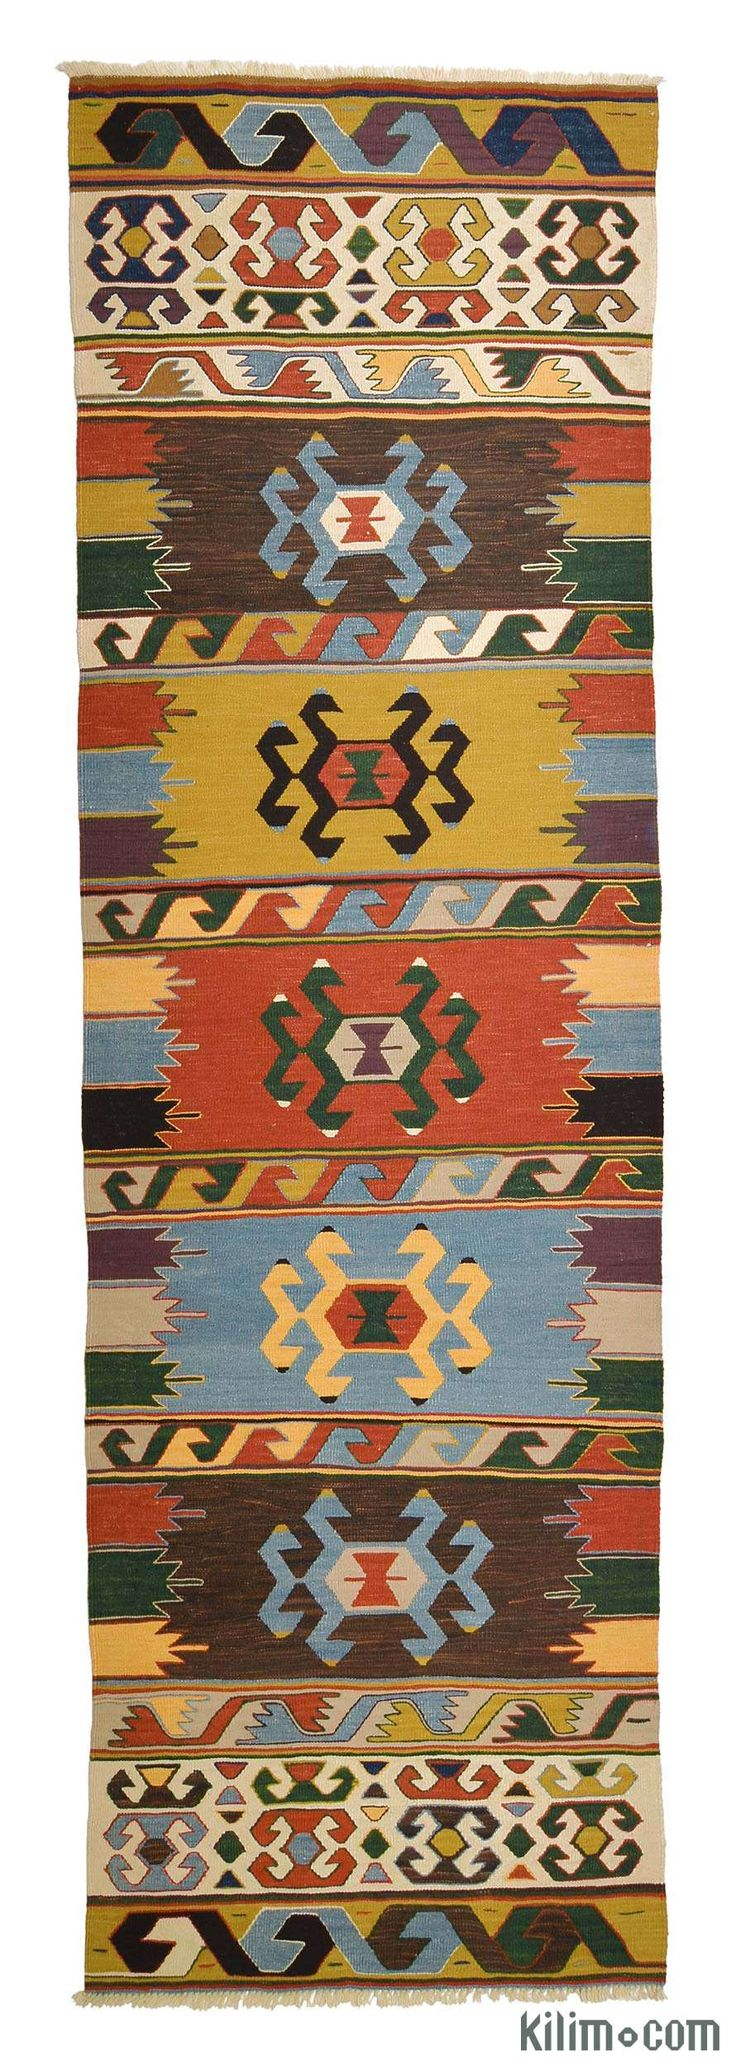 New Turkish Kilim Runner Rug hand-woven in Konya, Turkey with vegetable-dyed and hand-spun wool. The fringes can be removed upon request. If you like the design of this rug, we can custom make it to meet your color and size requirements.